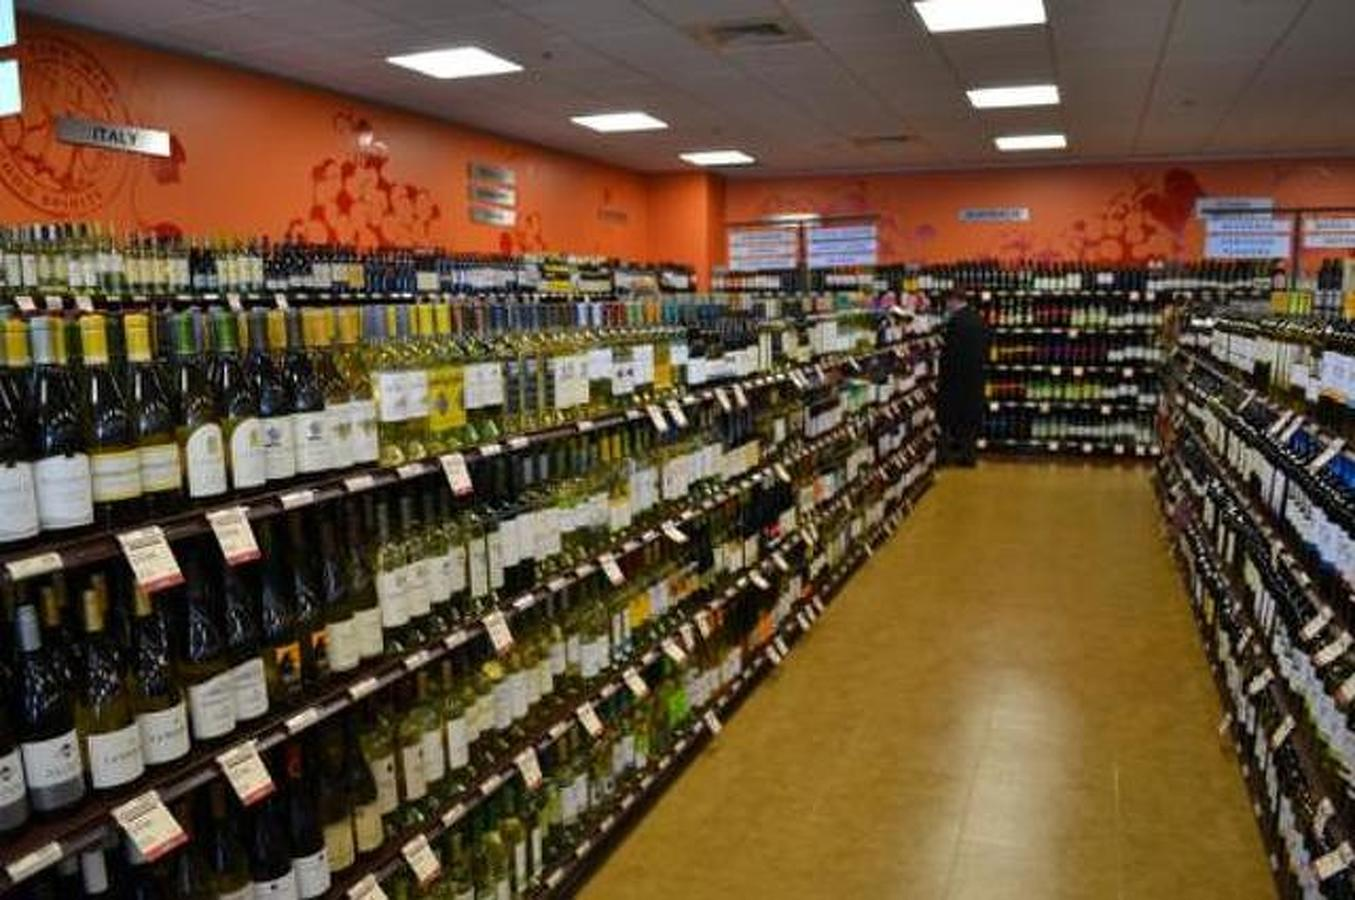 State College Pa State Wine And Spirits Stores To Be Open On Martin Luther King Day Other Holidays